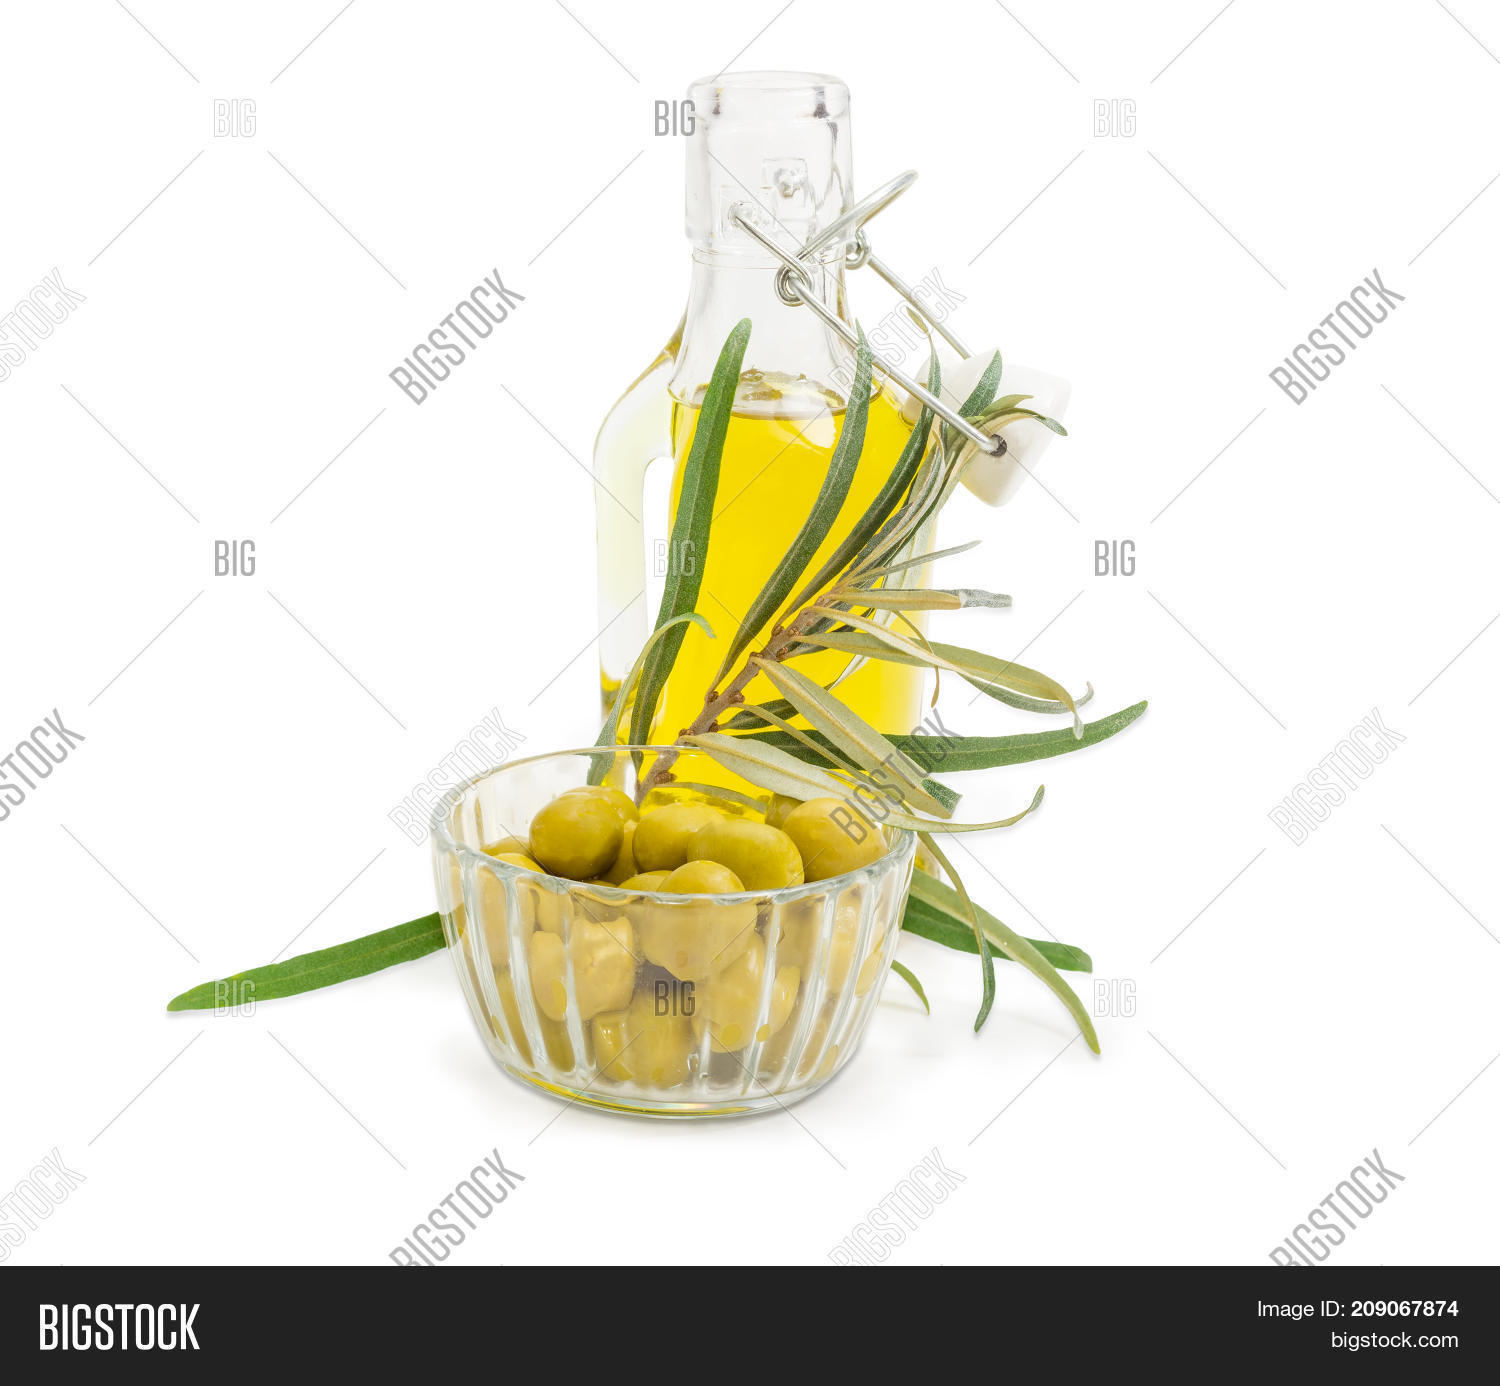 Green Olives Small Image & Photo (Free Trial) | Bigstock